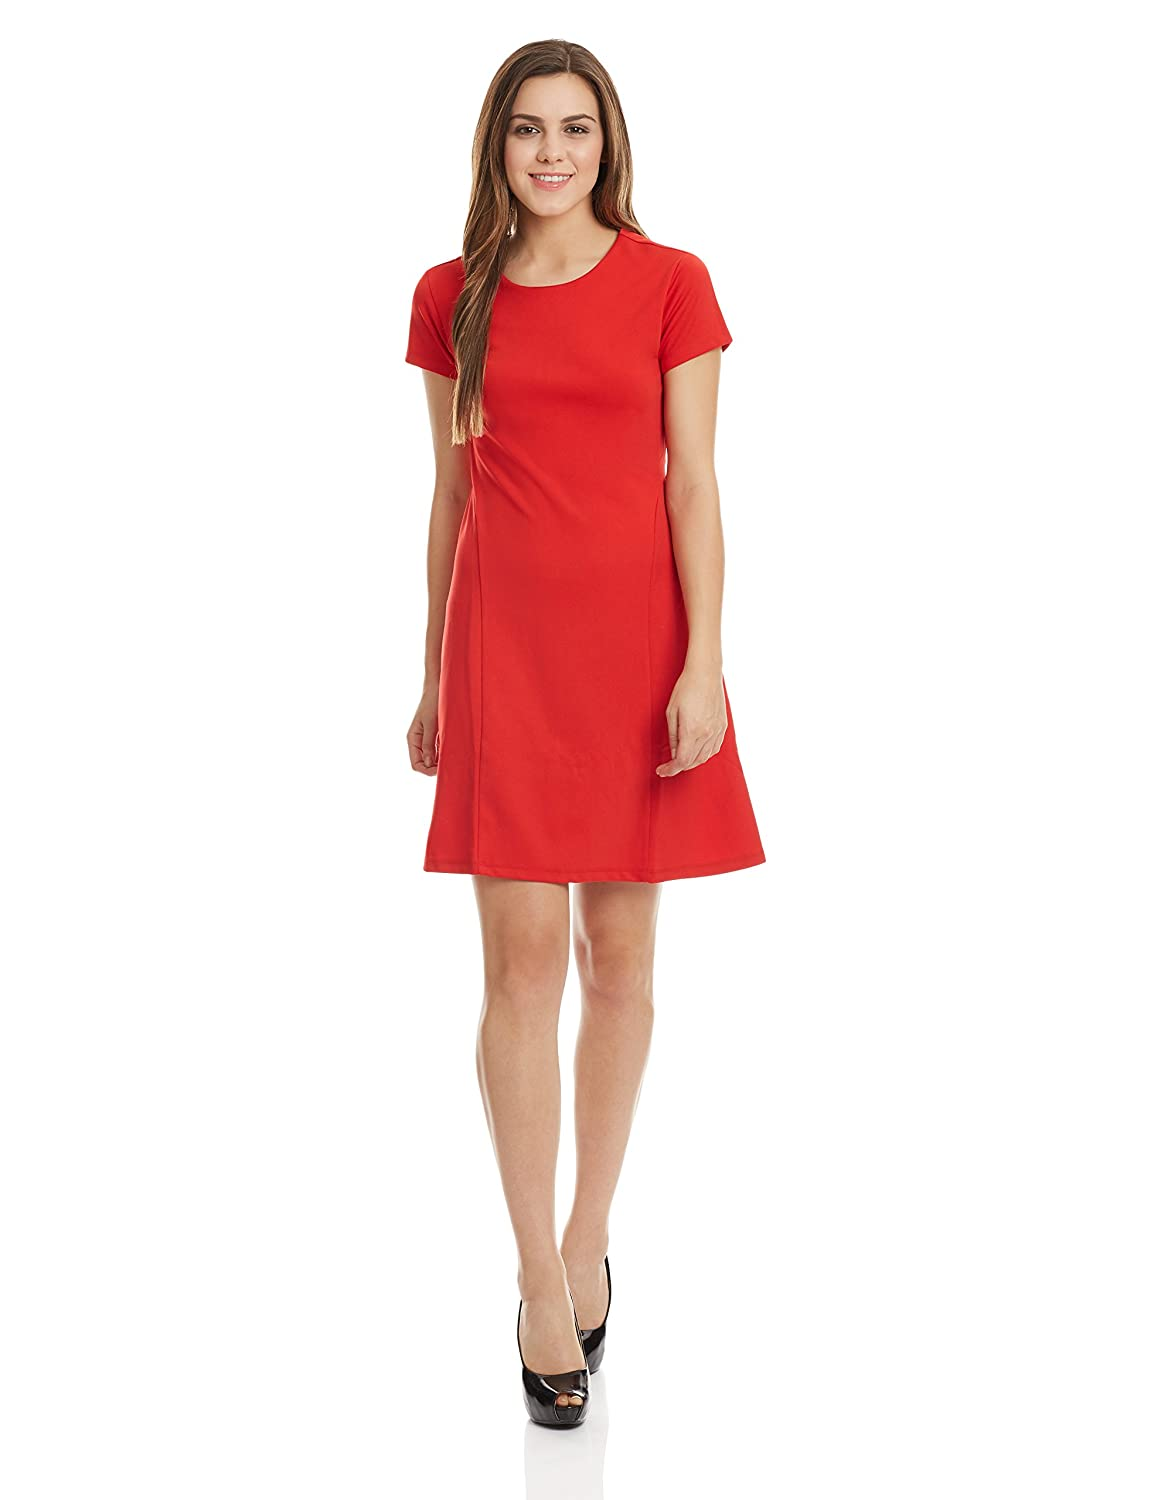 End Of Season Sale!! Upto 50% Or More off On United Colors Of Benetton By Amazon | UCB Women's A-Line Dress @ Rs.1,739